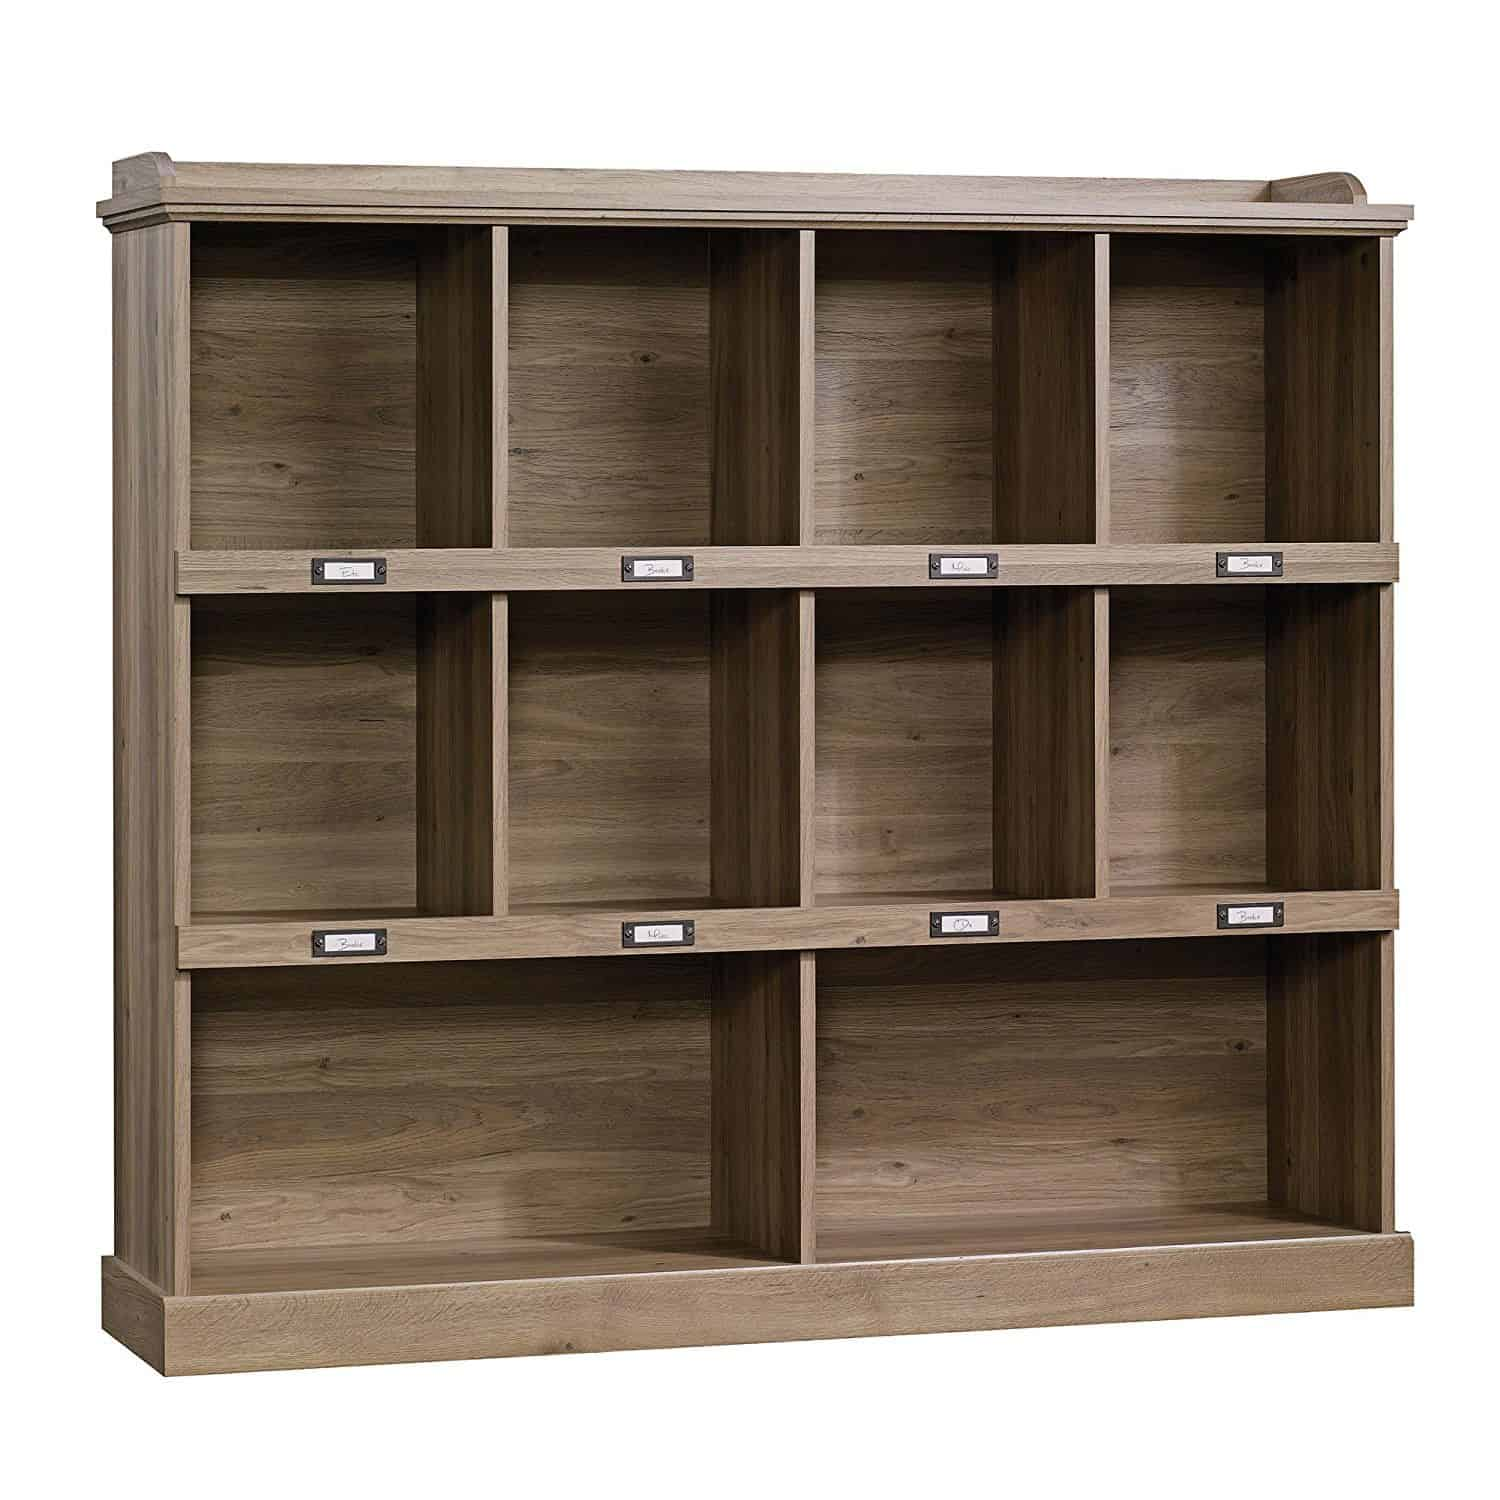 Laminated oak finish bookcase with cubbyhole storage and top shelf for gallery display.